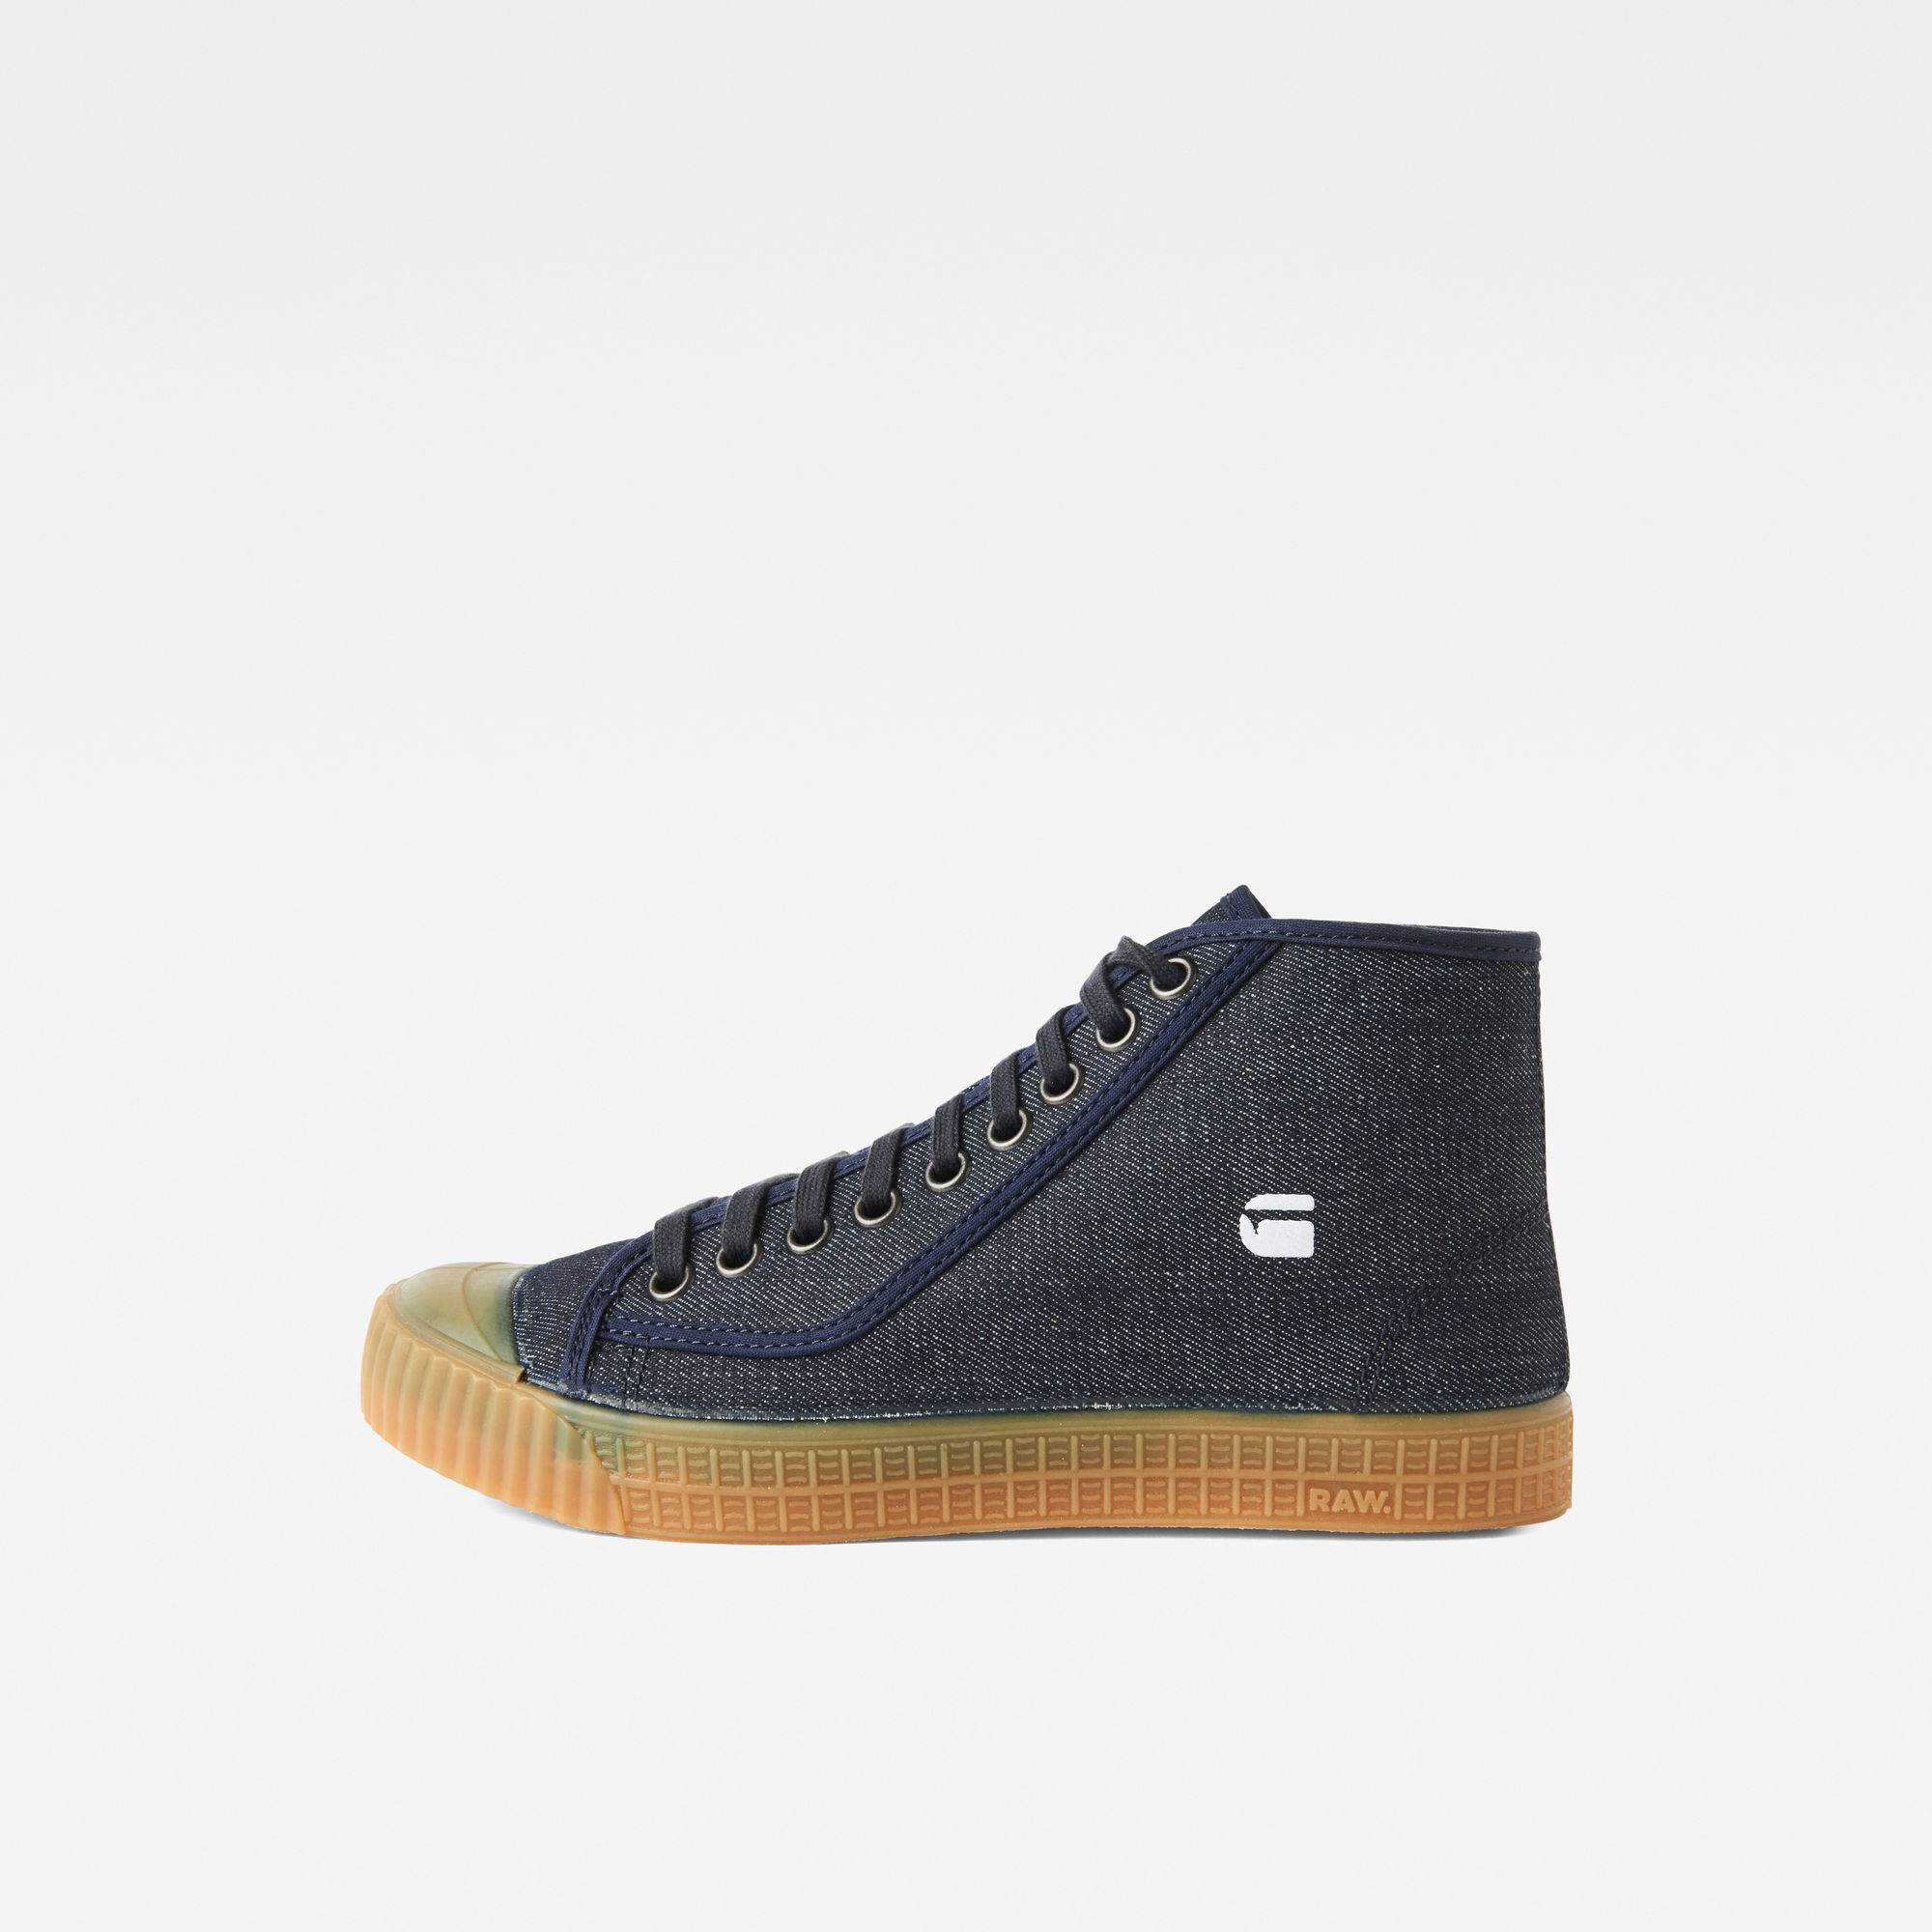 G-Star RAW Rovulc Denim Mid Sneakers